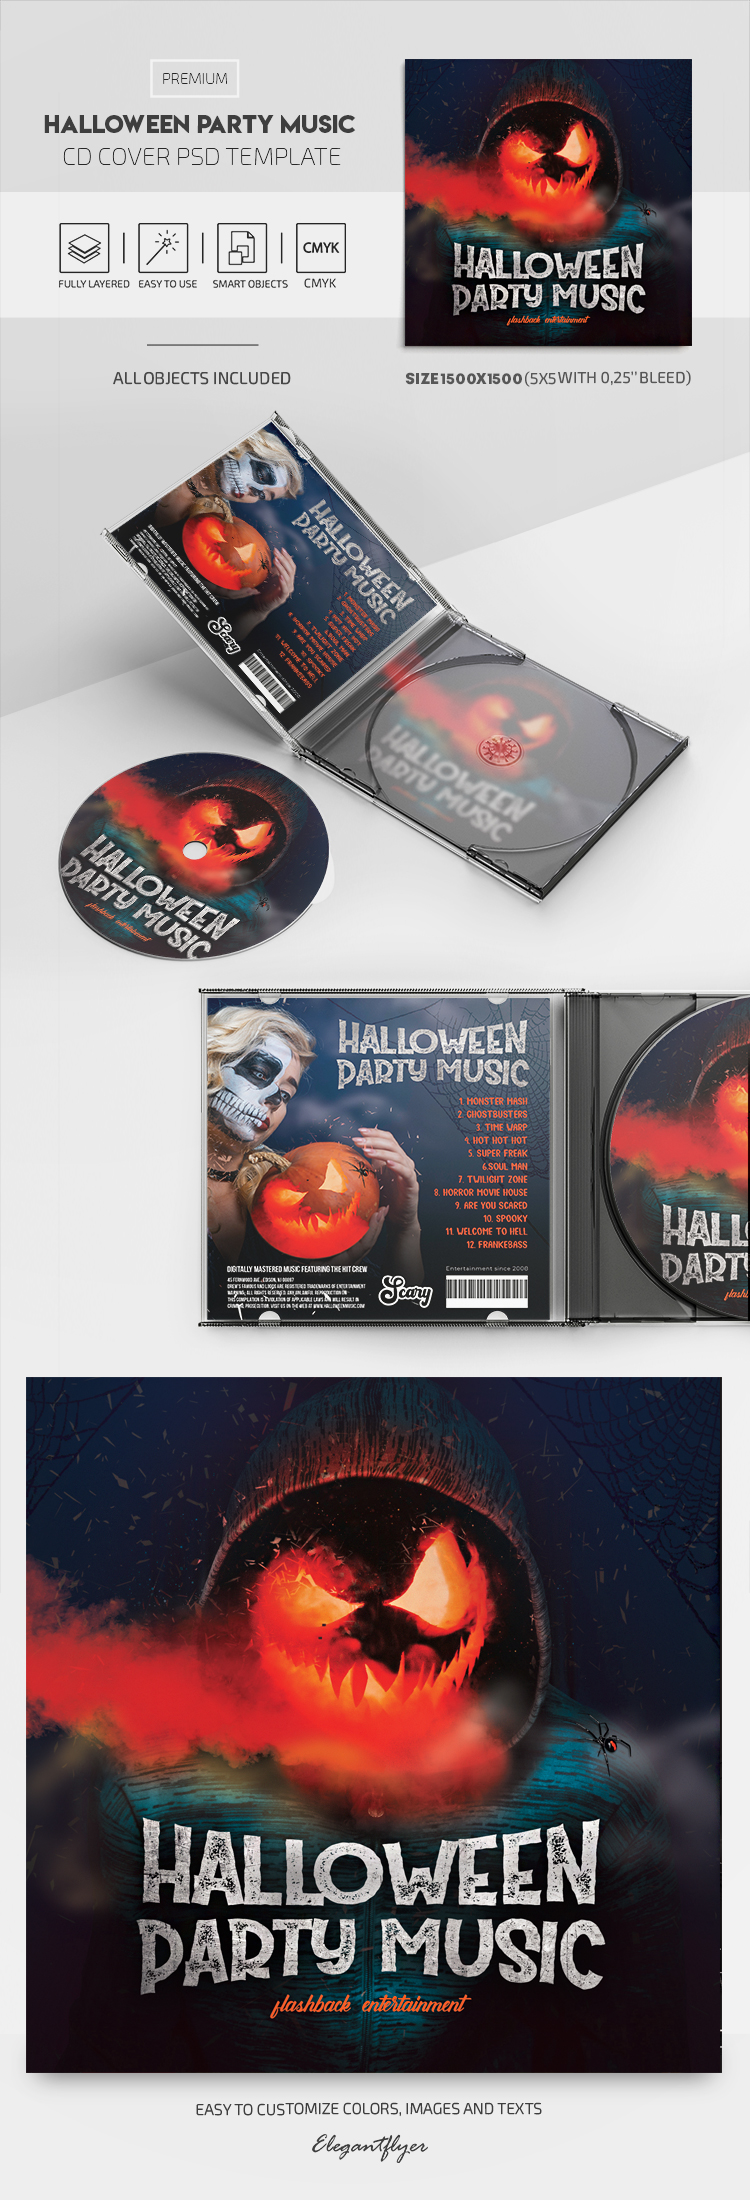 Halloween Party Music – Premium CD Cover PSD Template